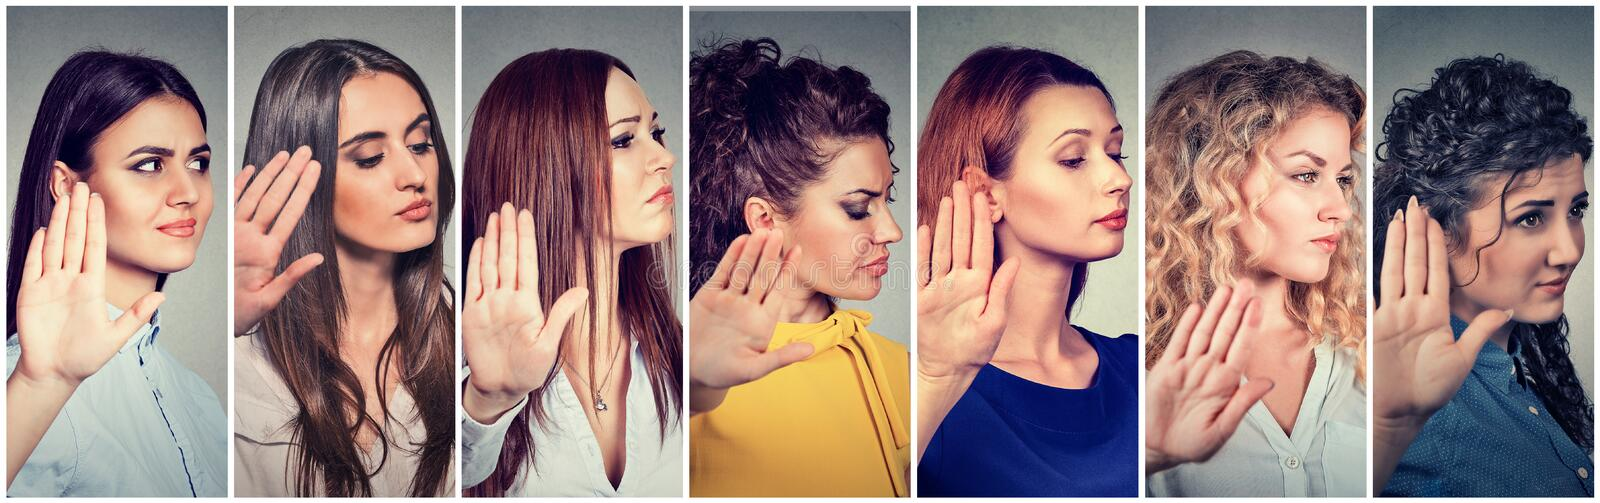 Group of annoyed angry women with bad attitude stock photo